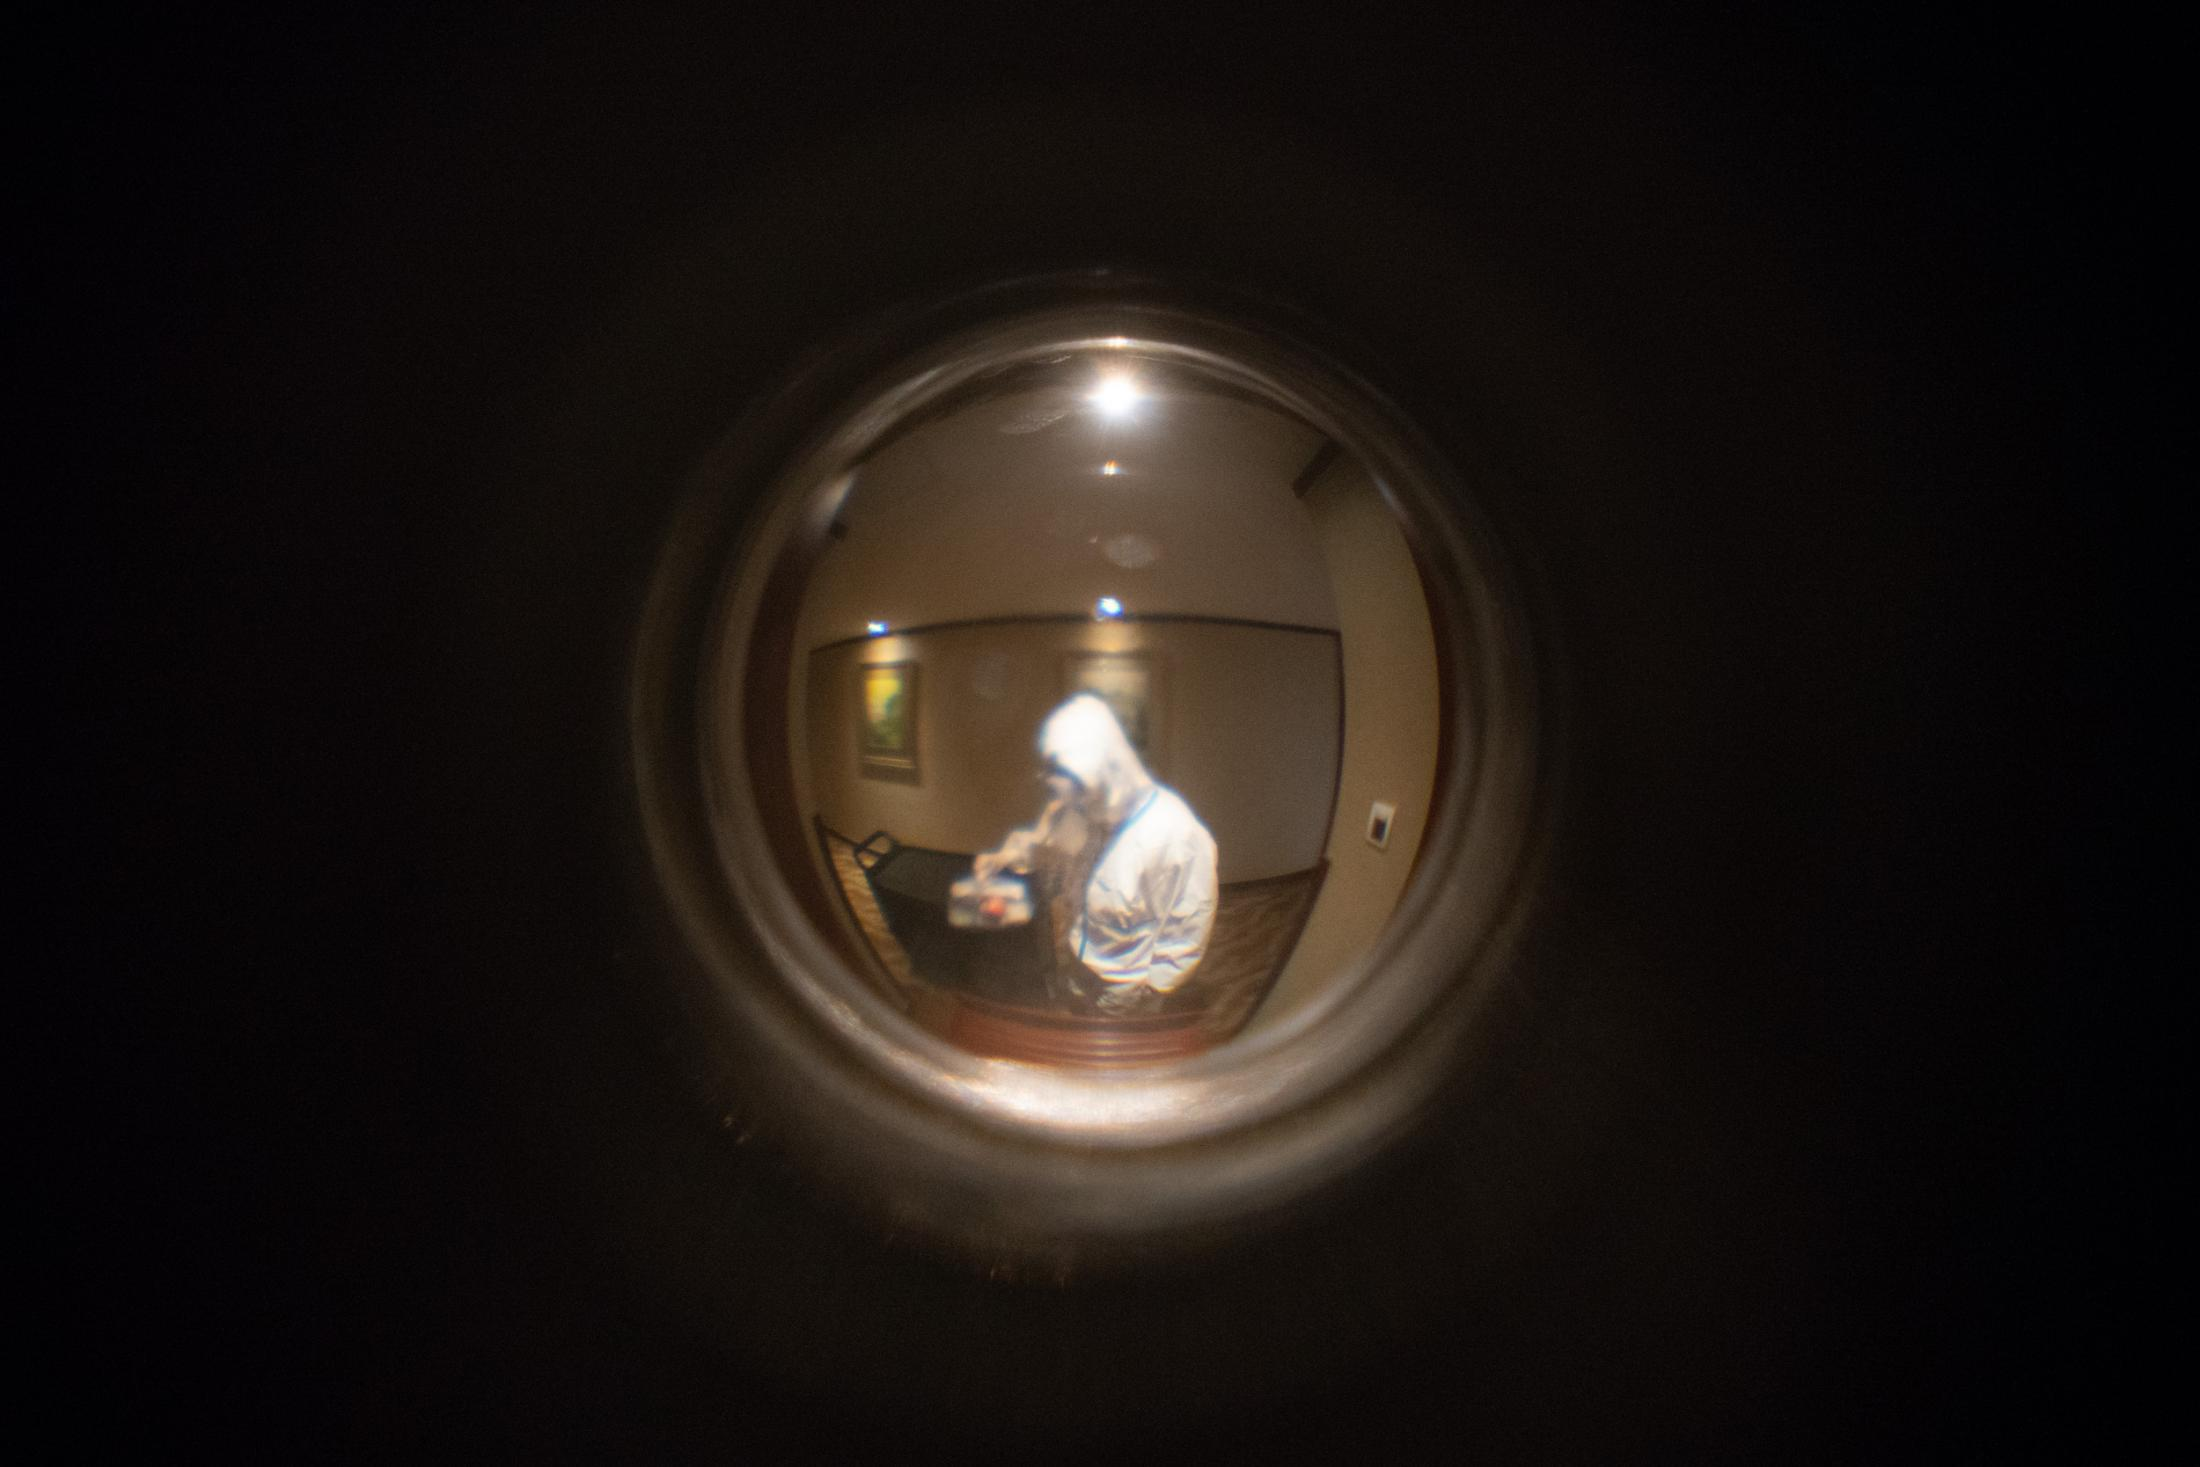 Seen through the peephole: a hotel staff taking a packed lunch from the cart to drop off outside my door.